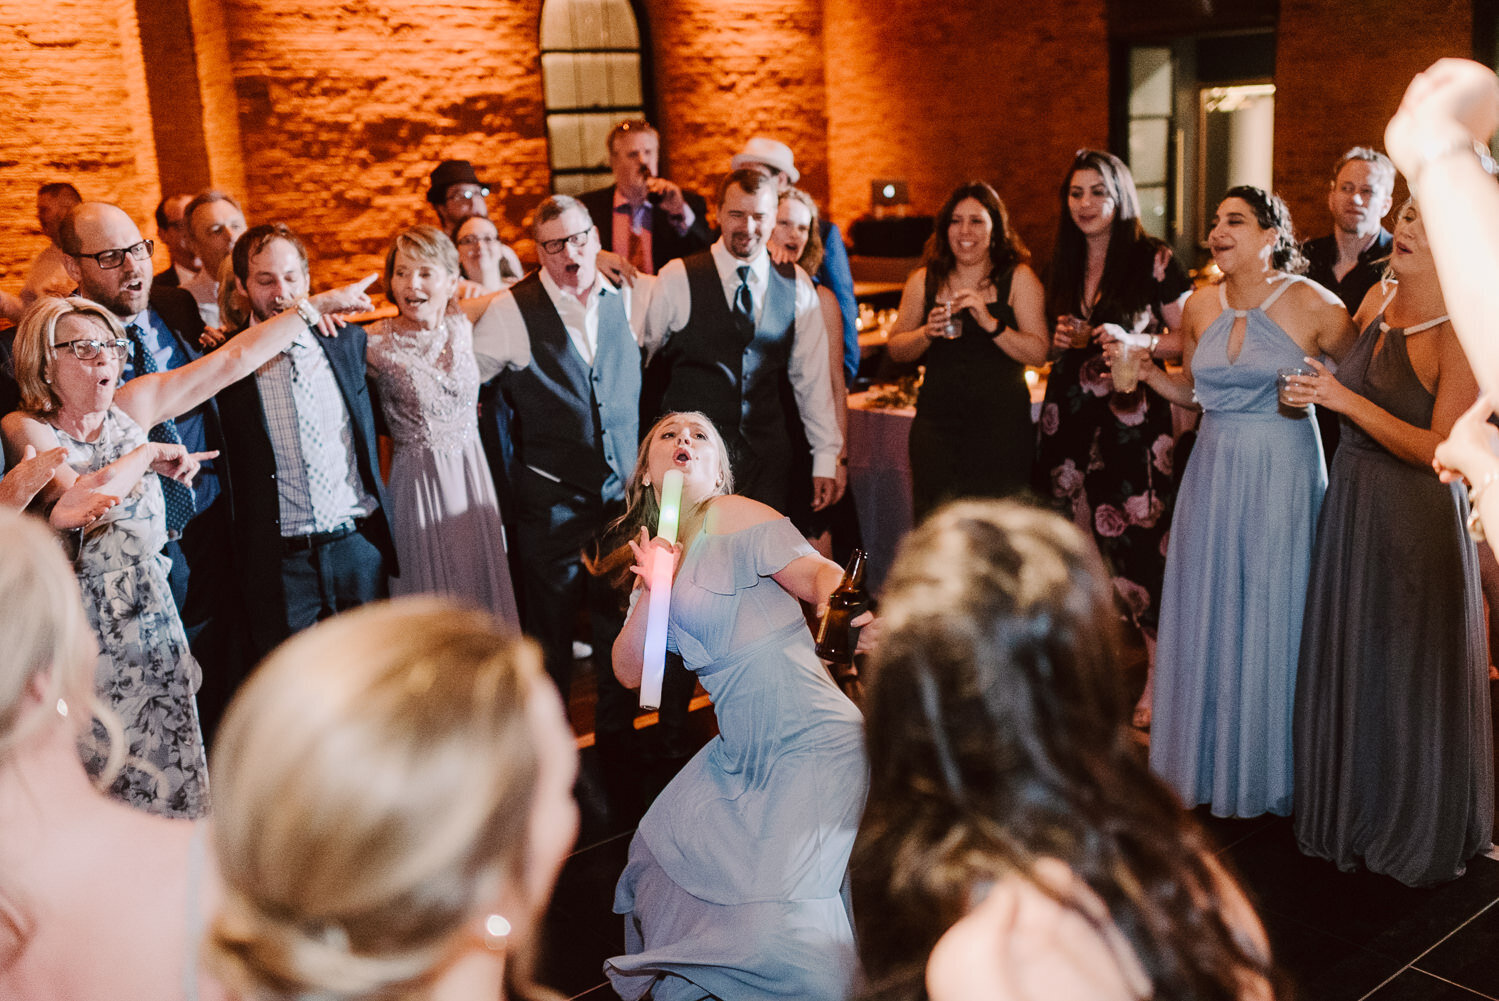 clementine-nashville-wedding-37